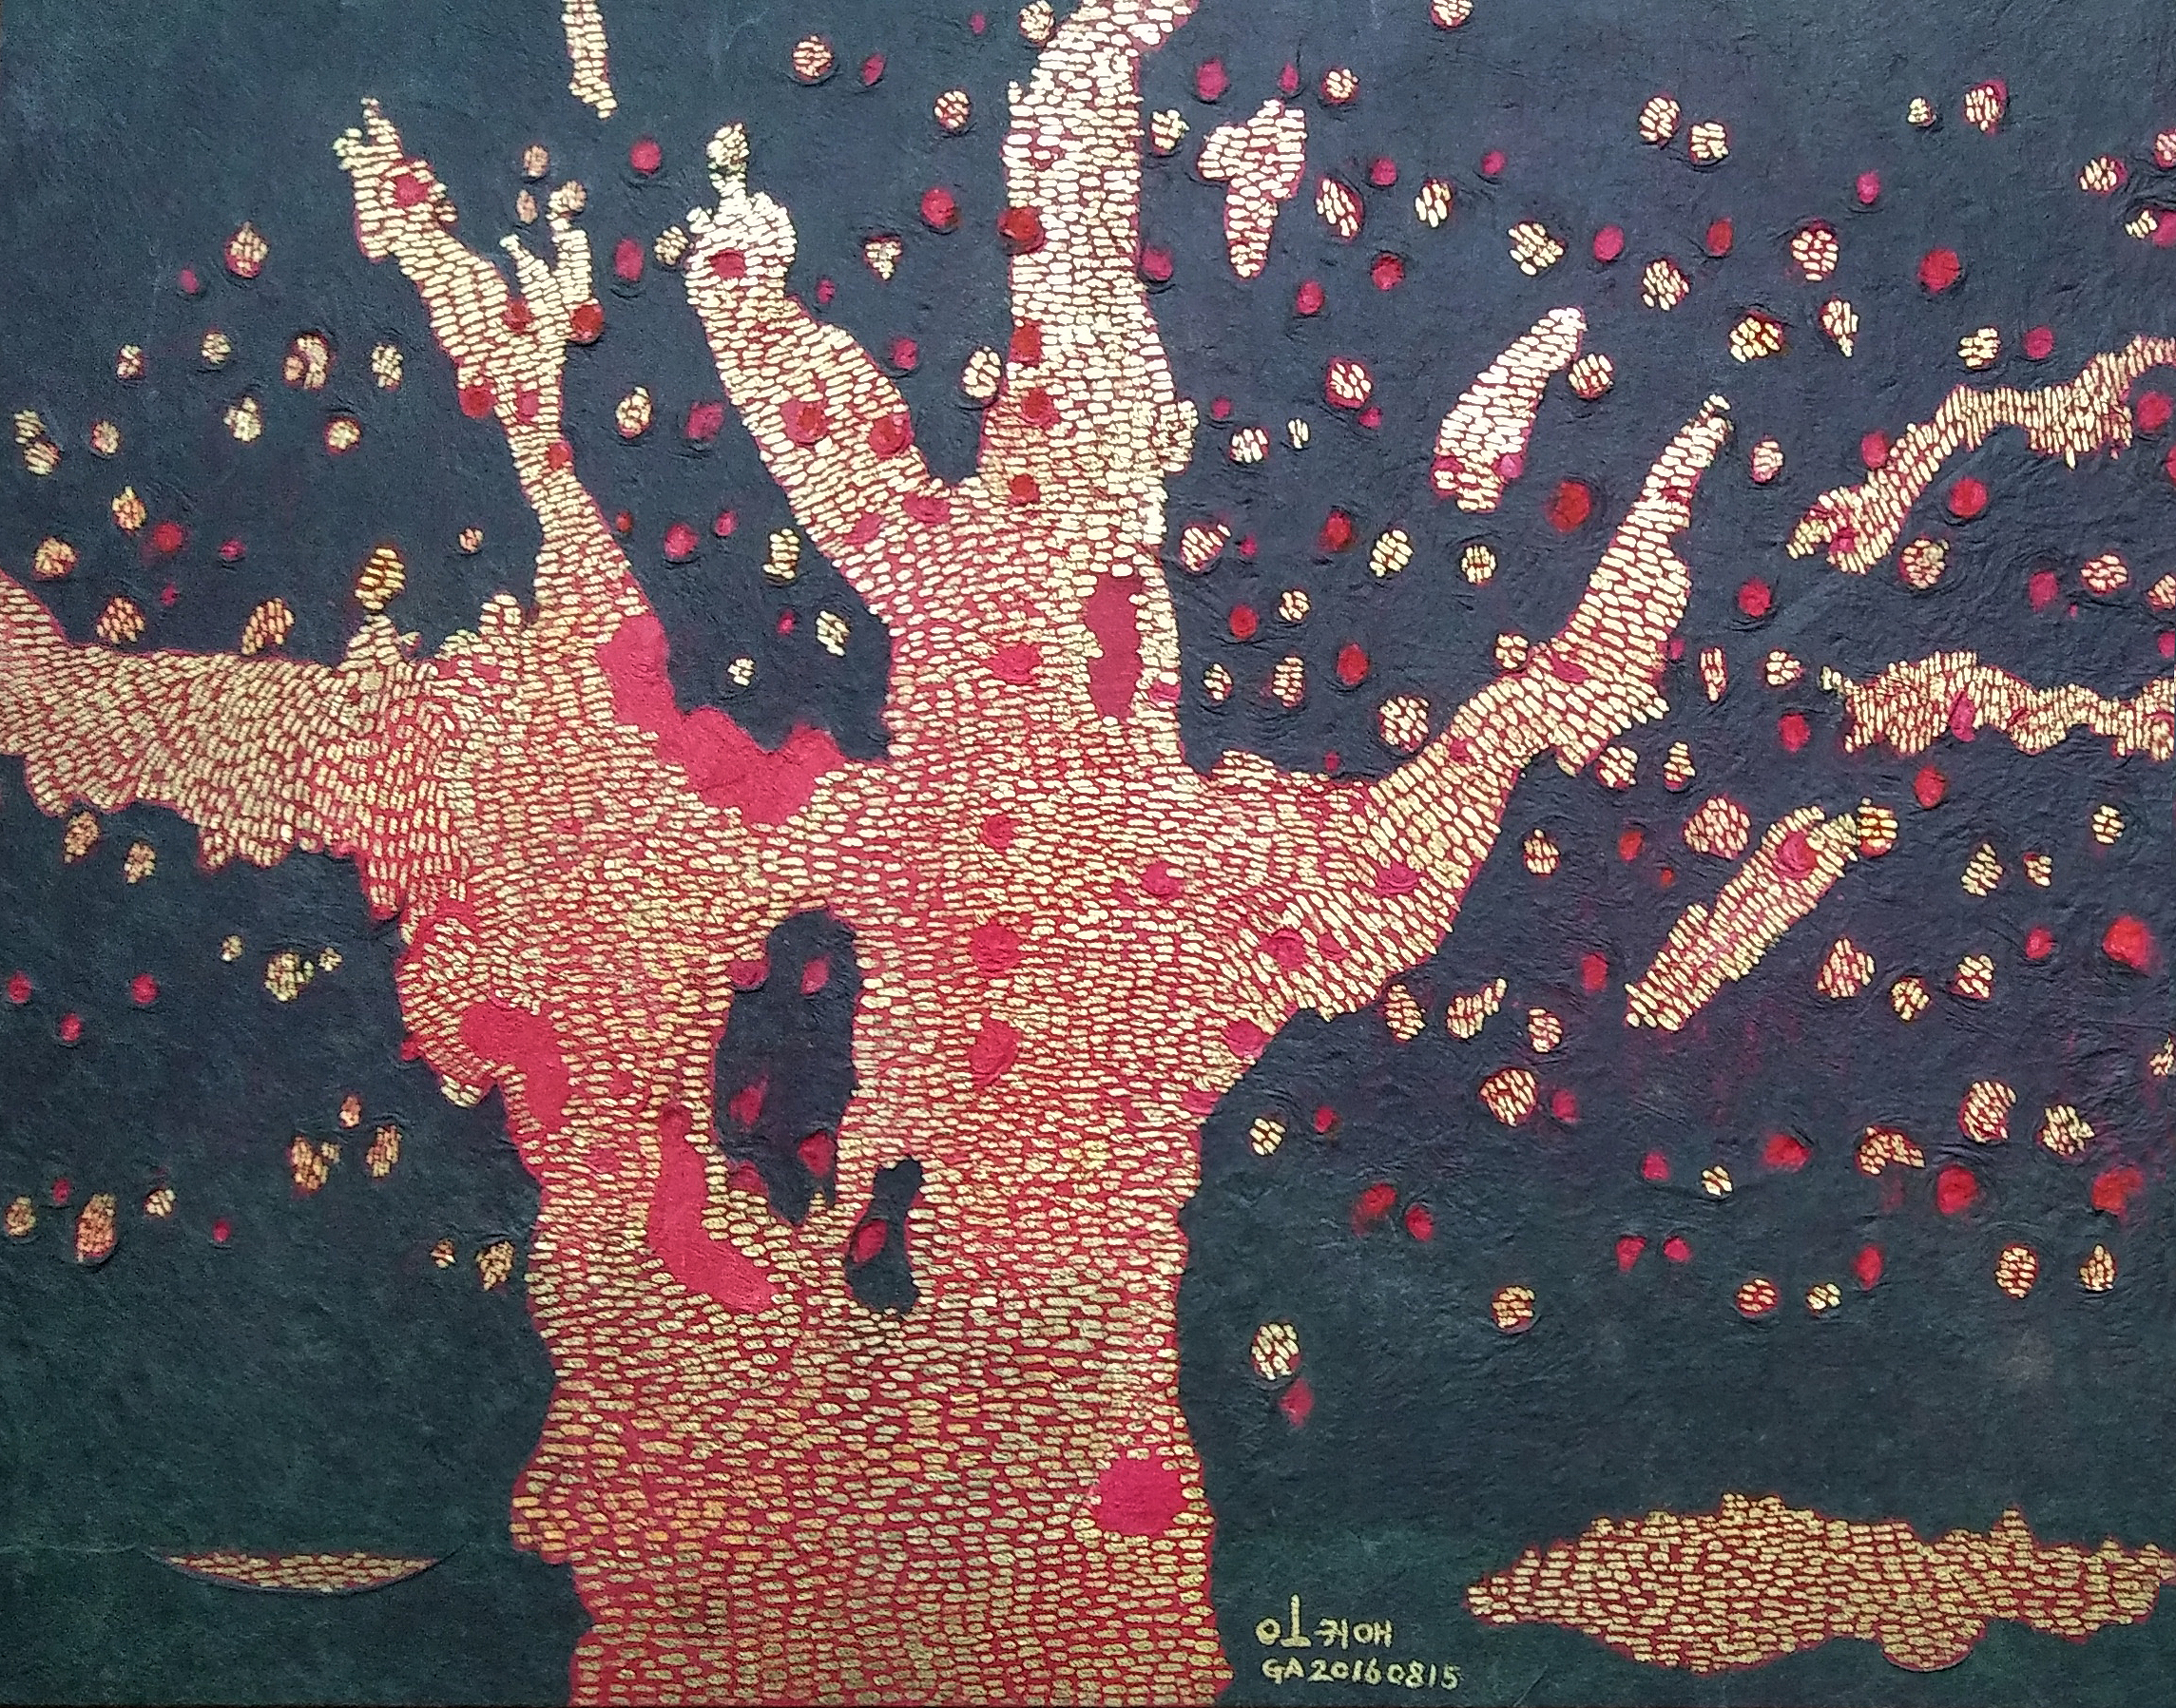 4월.오귀애 Oh Gyeae. Old Tree. 120 X 65 cm. Korean traditional paper